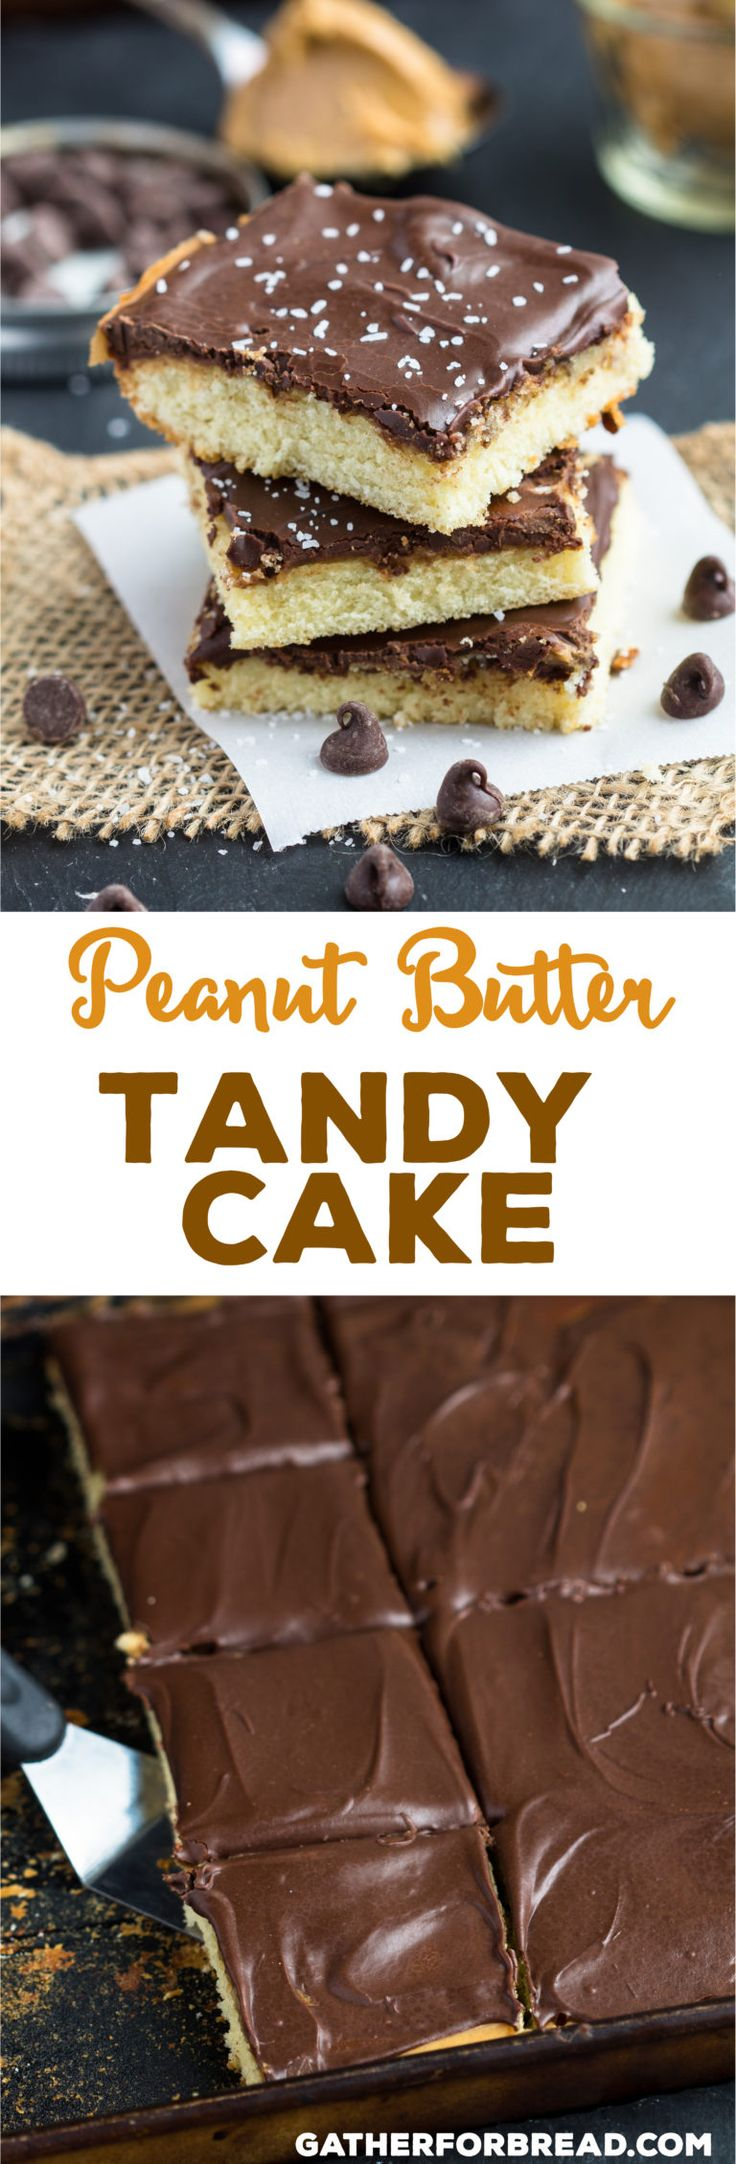 Peanut Butter Tandy Cake - Friends and family love it when you make this cake!